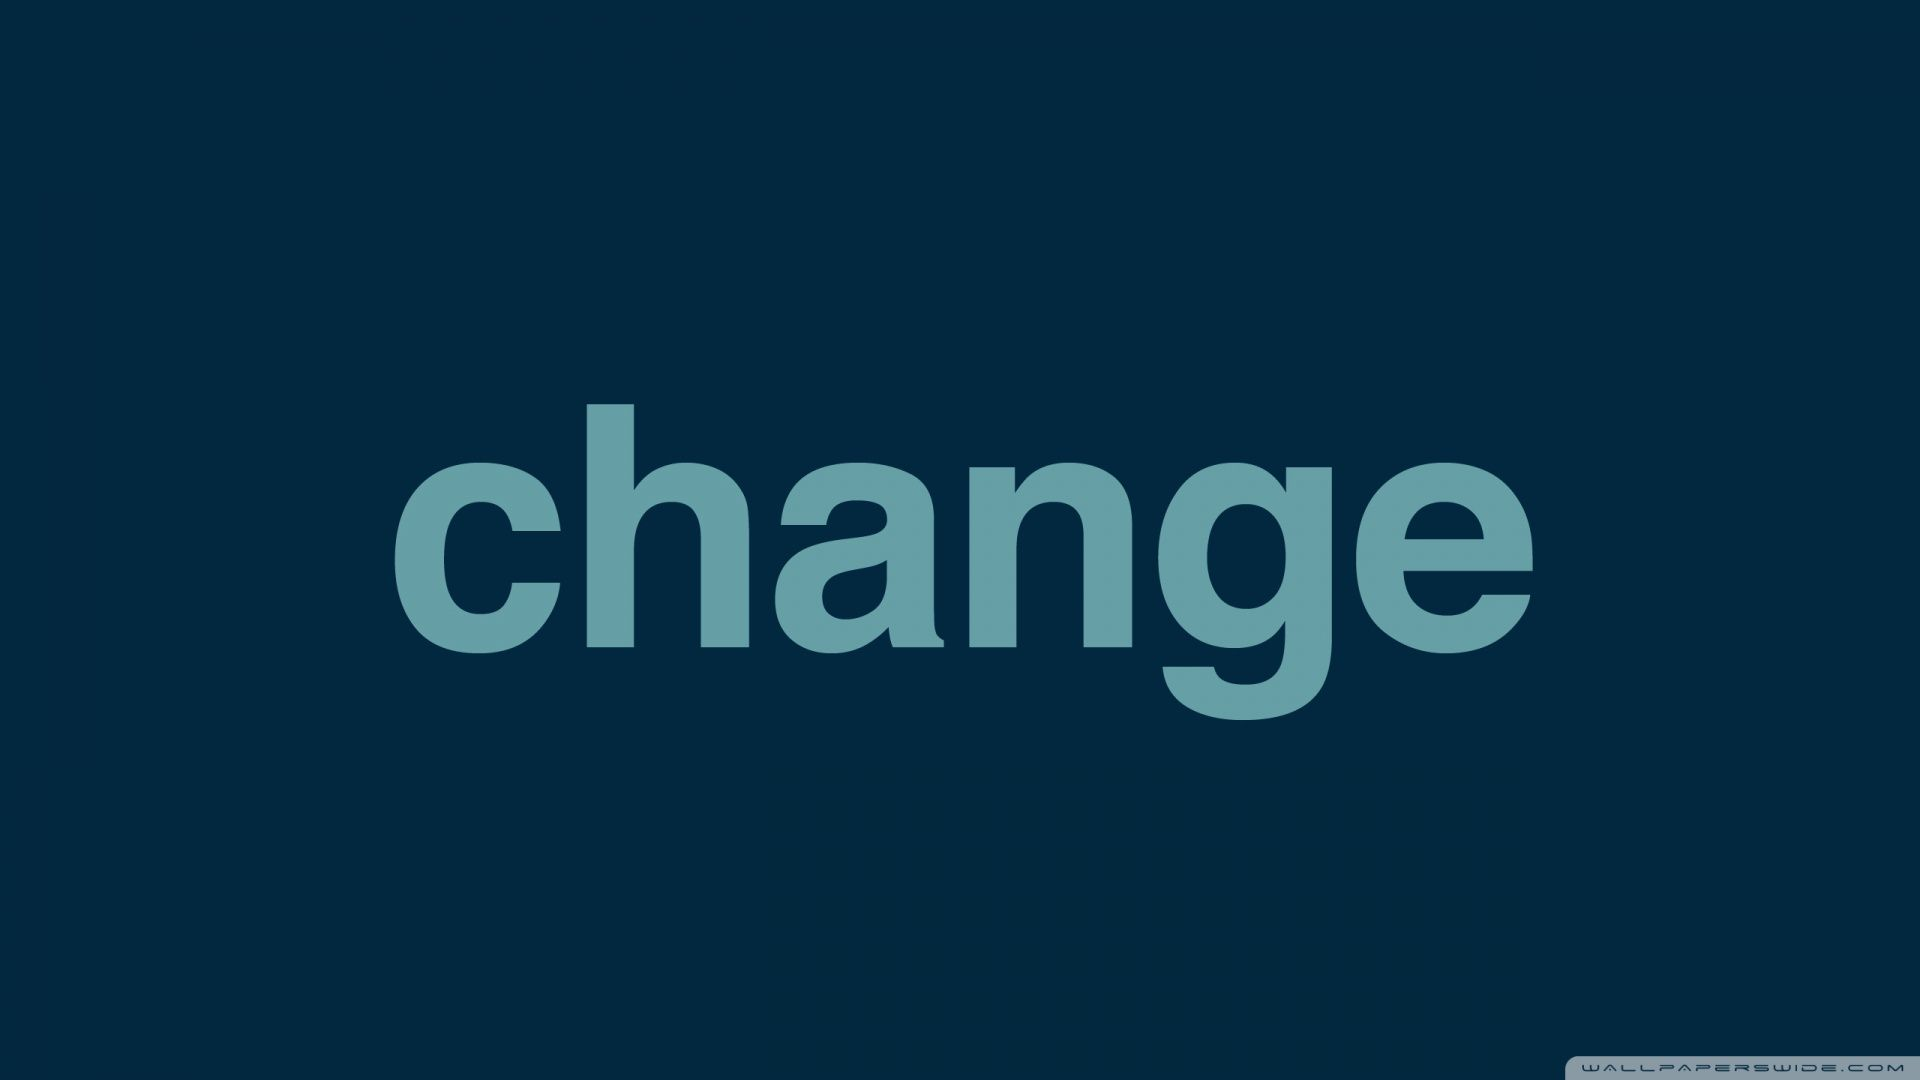 Change Wallpapers   Top Change Backgrounds   WallpaperAccess 1920x1080